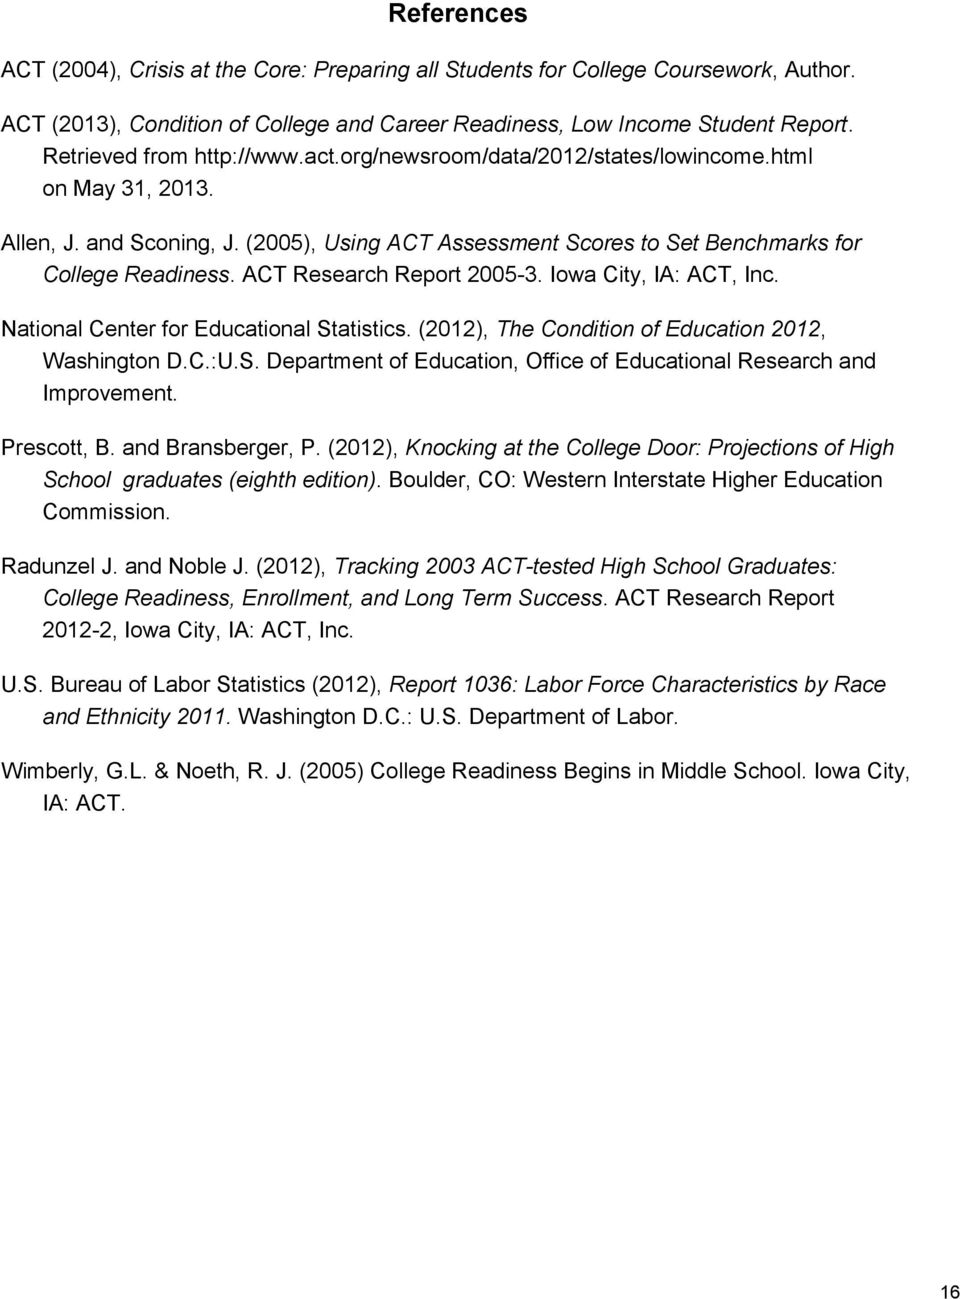 ACT Research Report 2005-3. Iowa City, IA: ACT, Inc. National Center for Educational Statistics. (2012), The Condition of Education 2012, Washington D.C.:U.S. Department of Education, Office of Educational Research and Improvement.